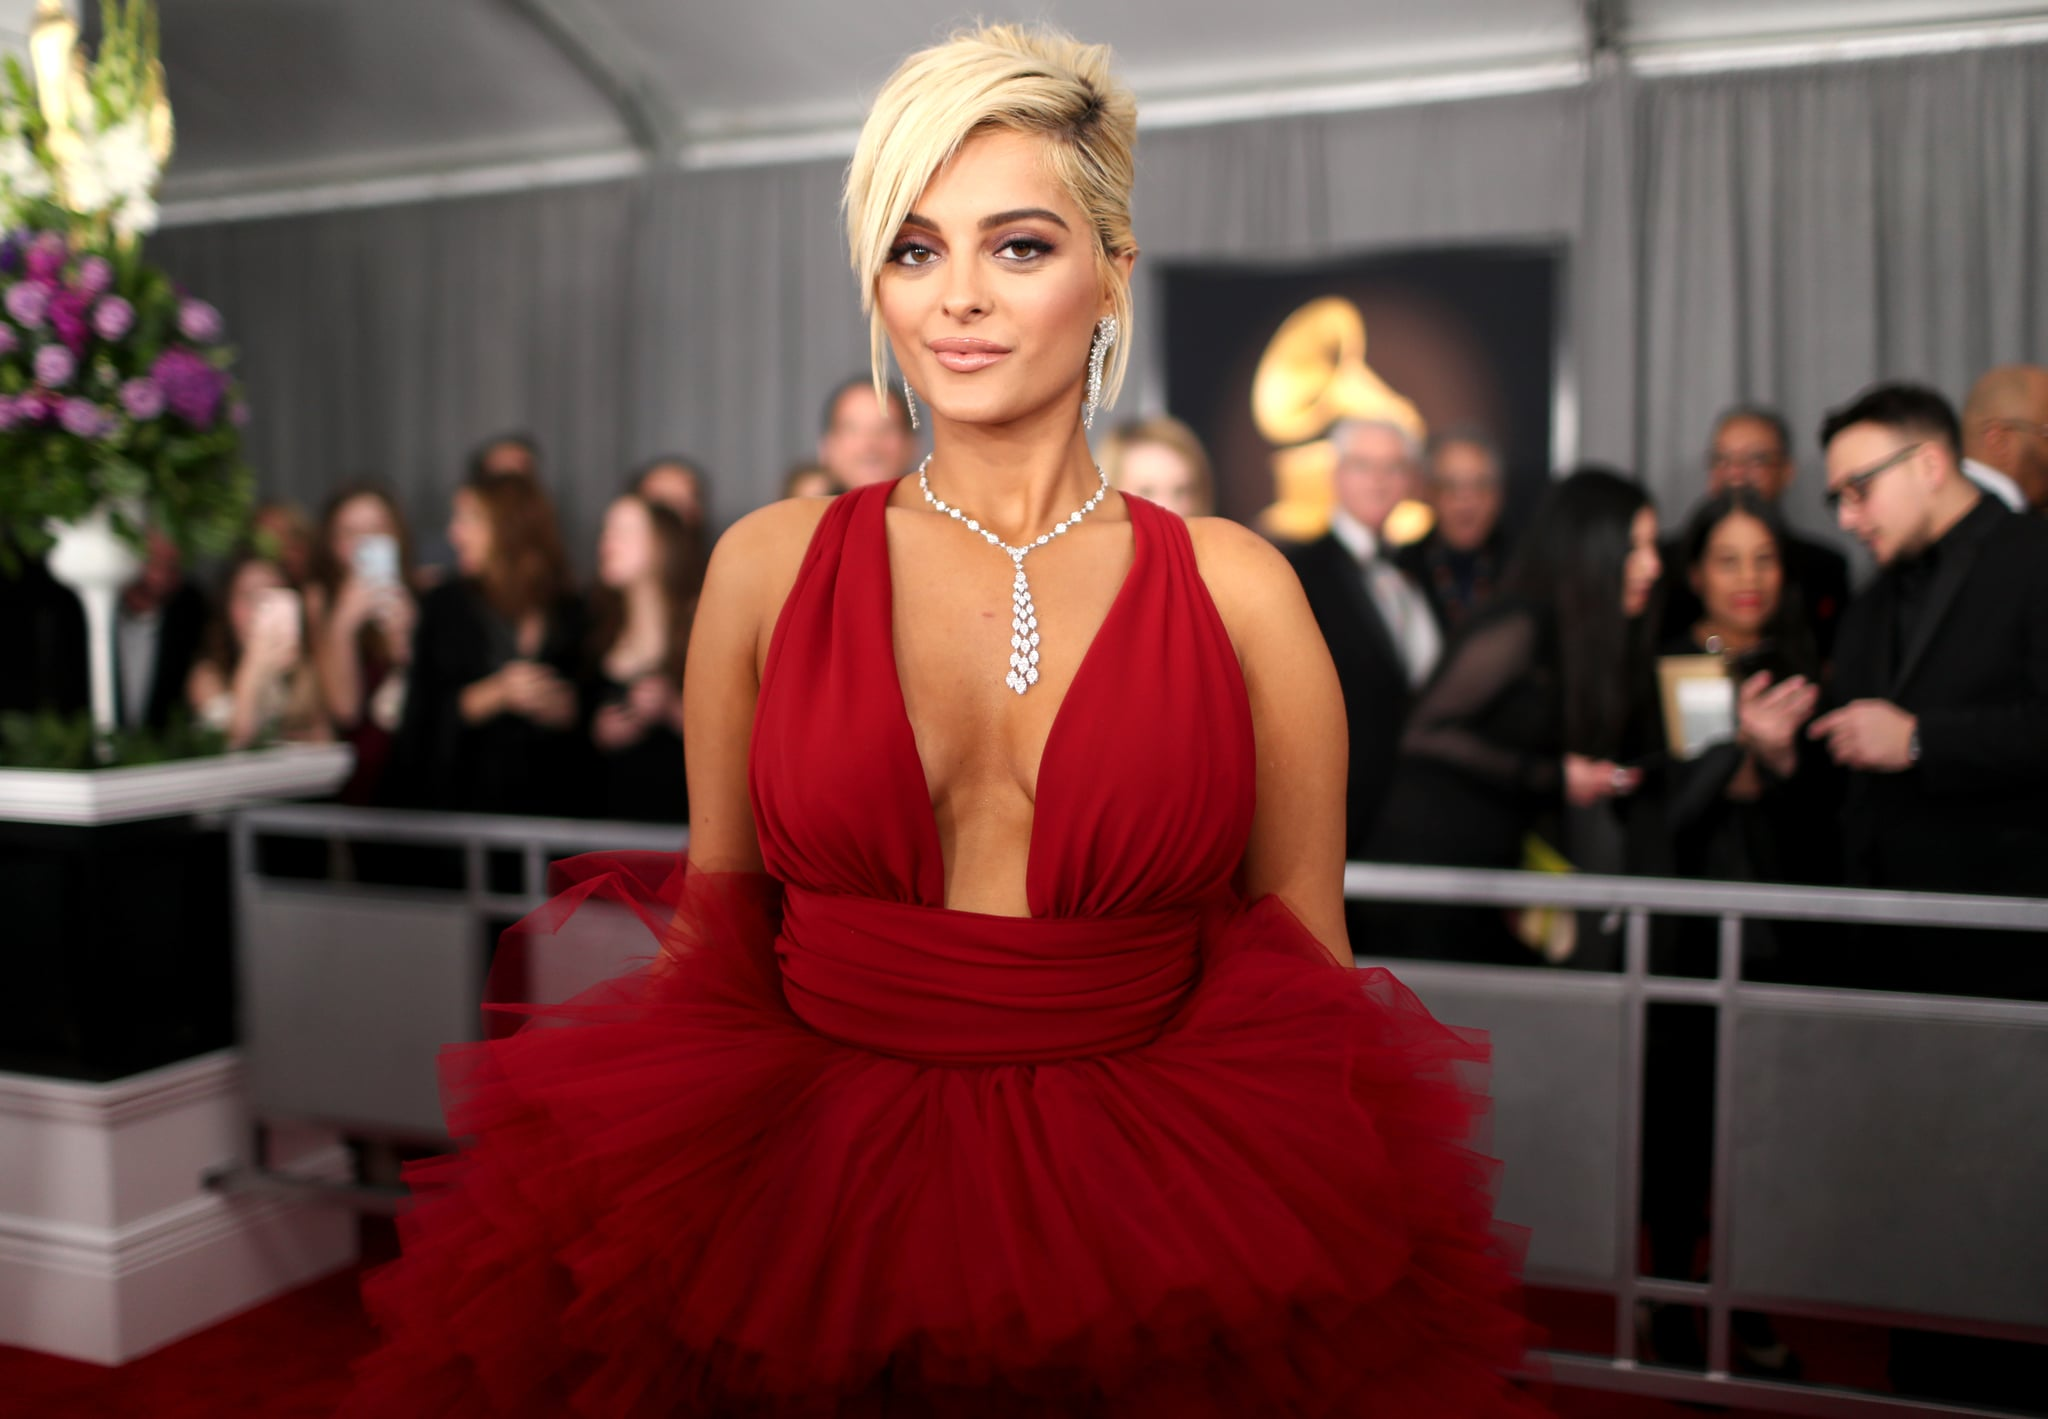 LOS ANGELES, CA - FEBRUARY 10:  Bebe Rexha attends the 61st Annual GRAMMY Awards at Staples Centre on February 10, 2019 in Los Angeles, California.  (Photo by Rich Fury/Getty Images for The Recording Academy)